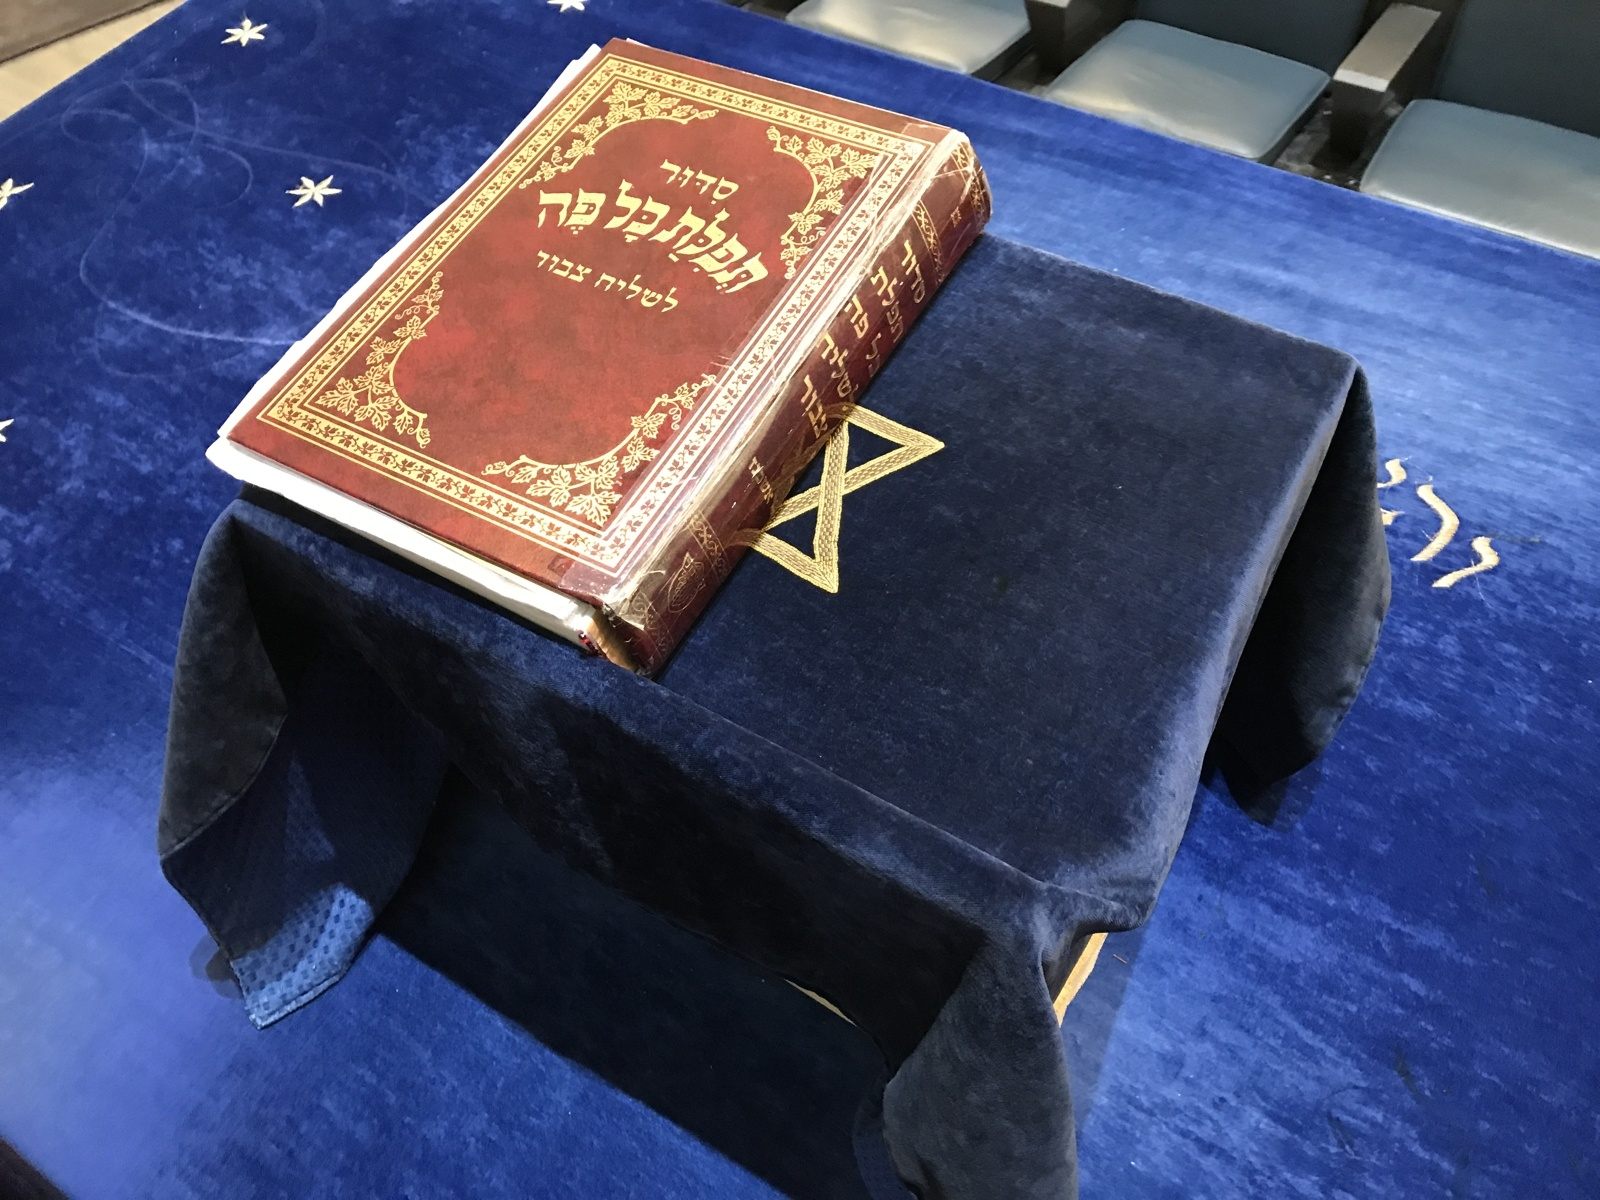 Brown book with golden lettering on a blue velvet ground